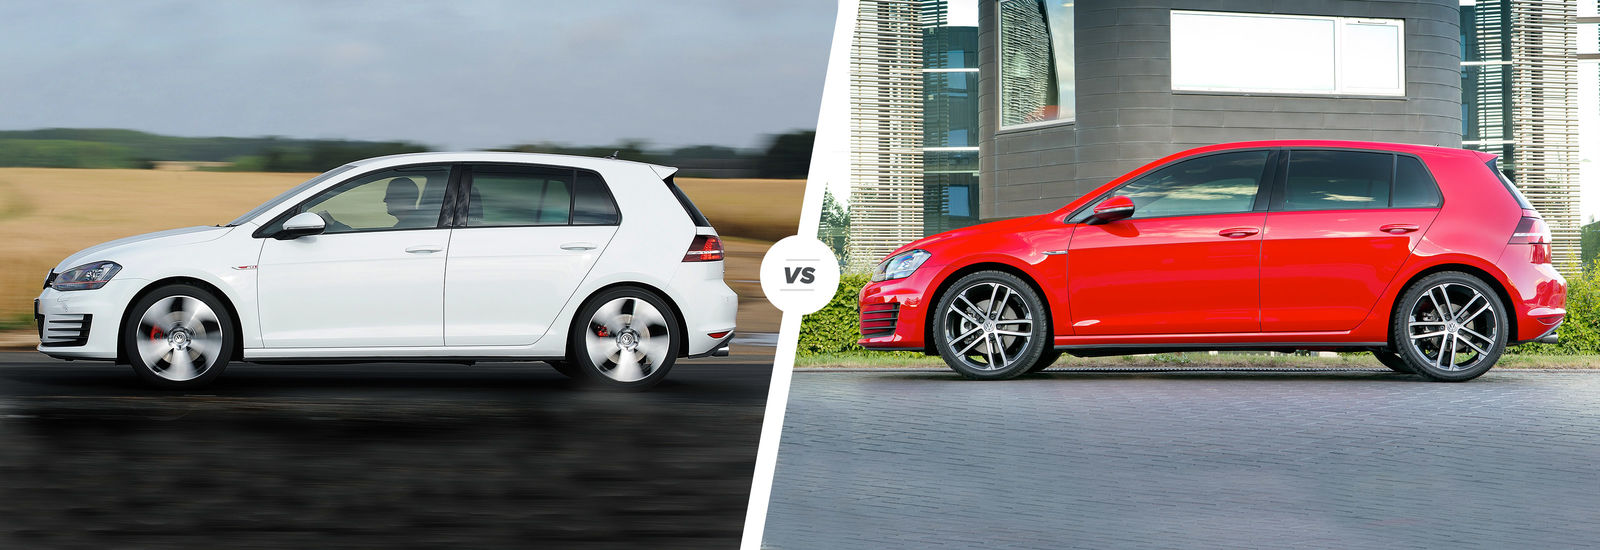 vw golf gti vs golf gtd battle at the pumps carwow. Black Bedroom Furniture Sets. Home Design Ideas